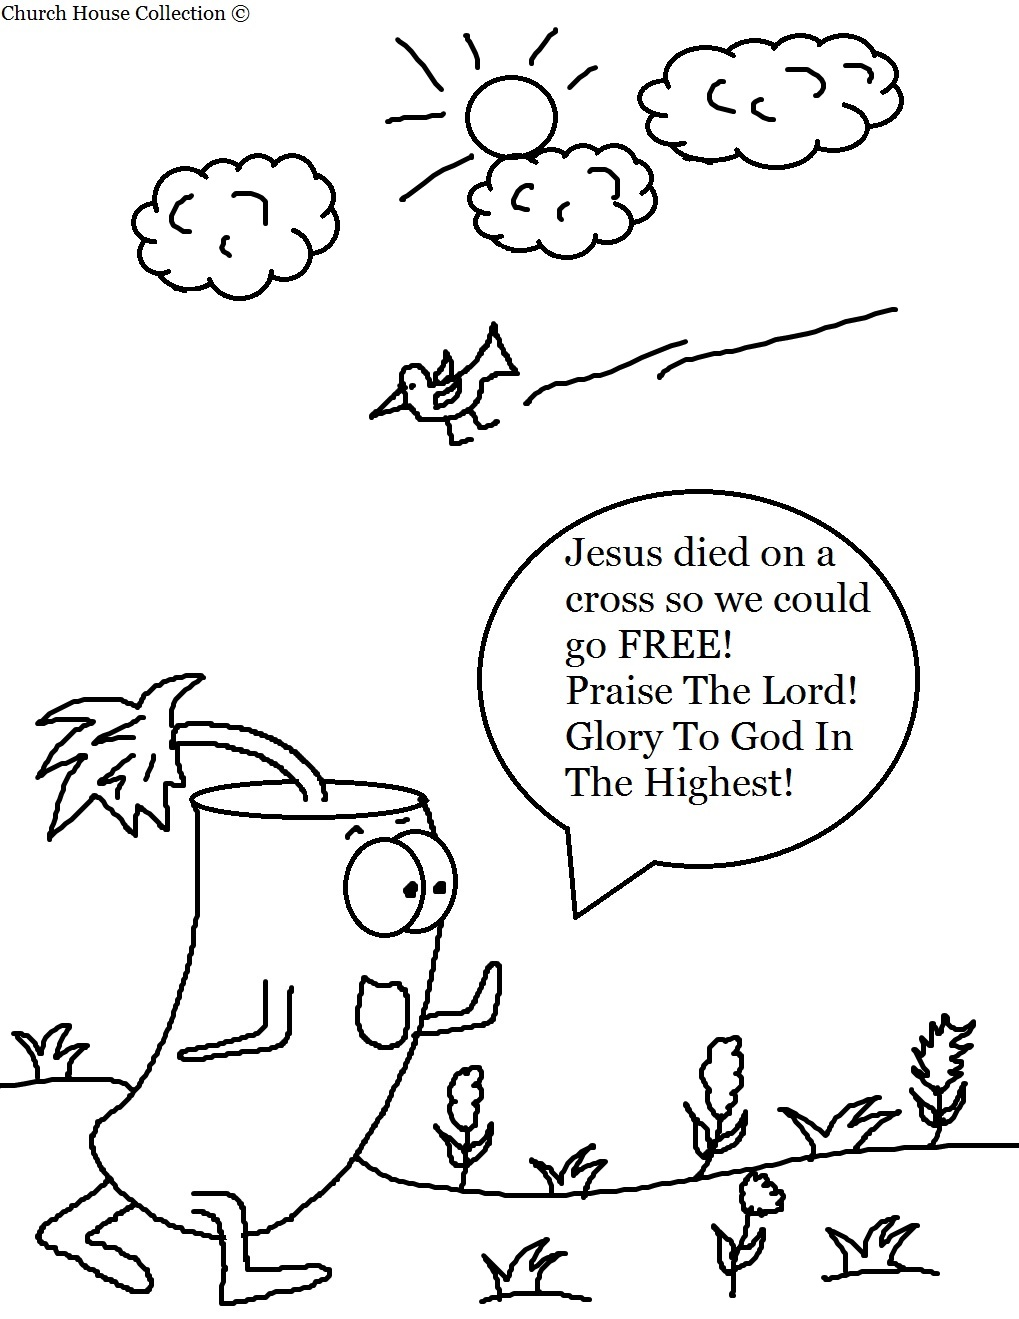 Free coloring pages fourth of july - Firecracker Coloring Pages For Kids In Sunday School